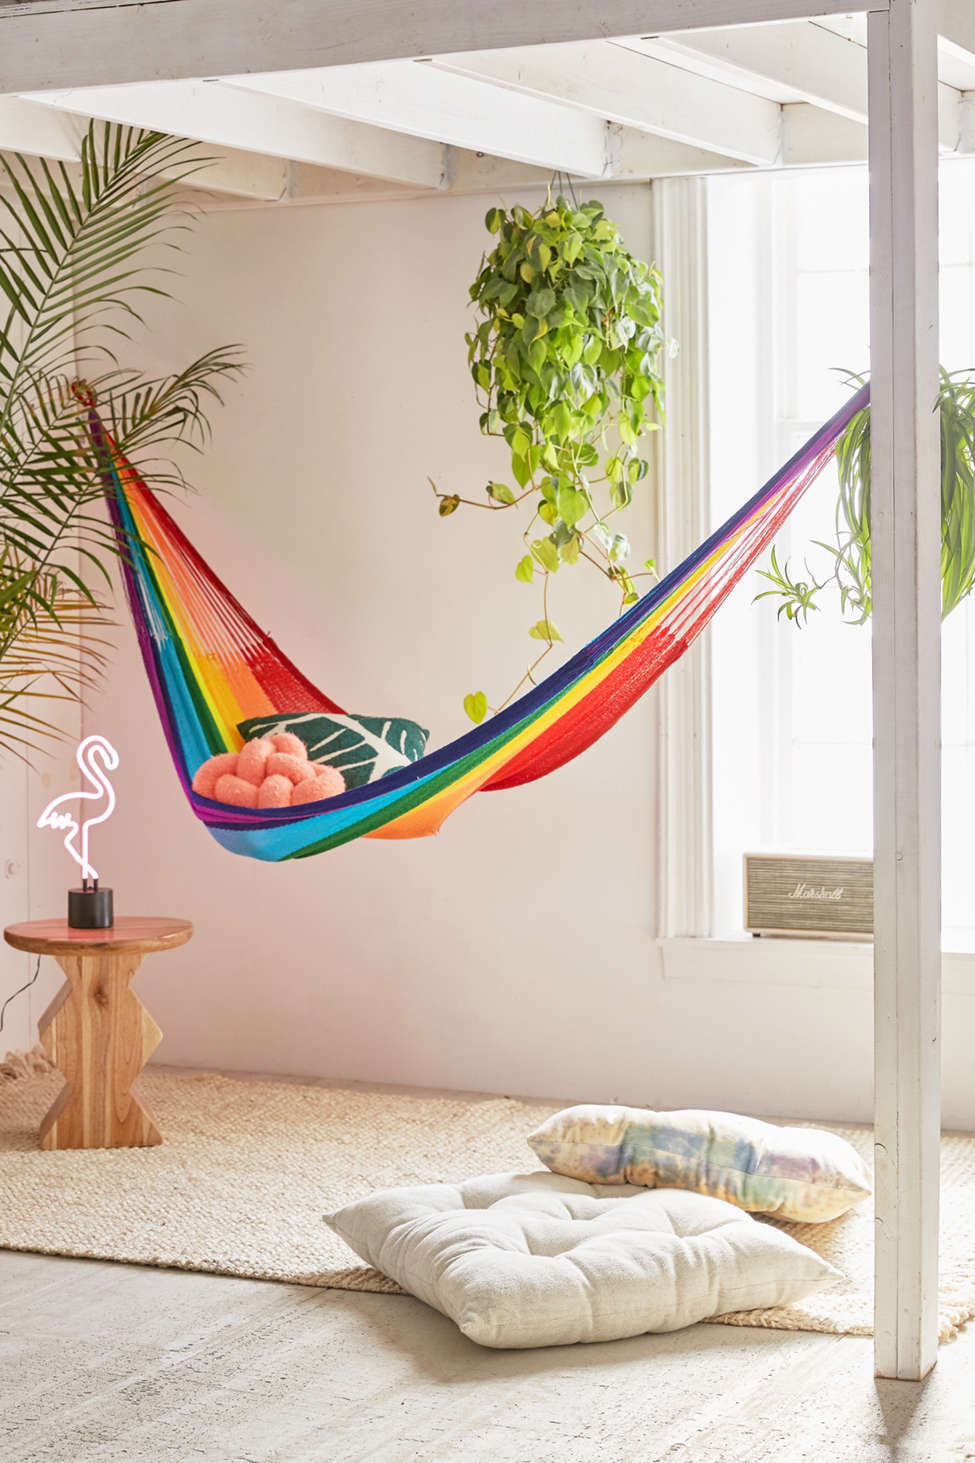 Slide View: 1: Yellow Leaf Rainbow Double Hammock